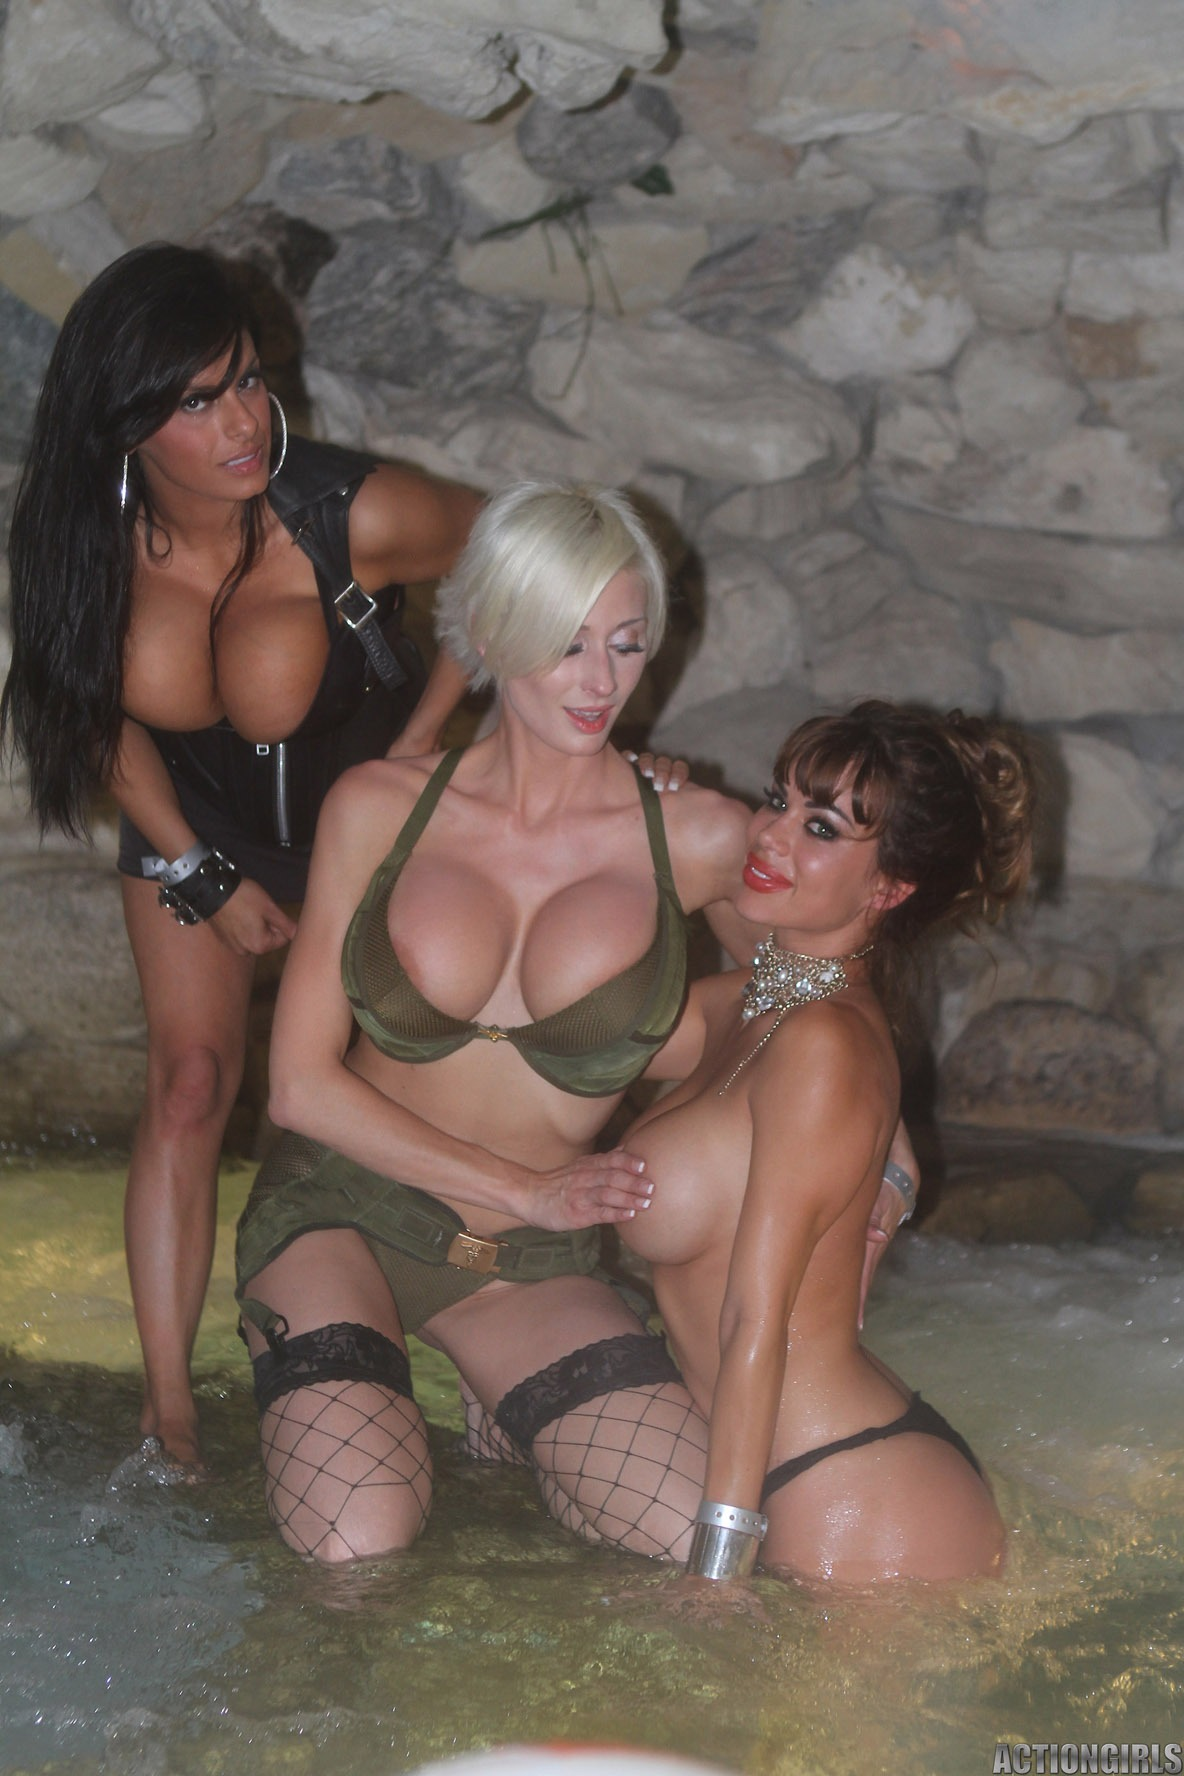 Girls of the playboy mansion sex video  fucking pic